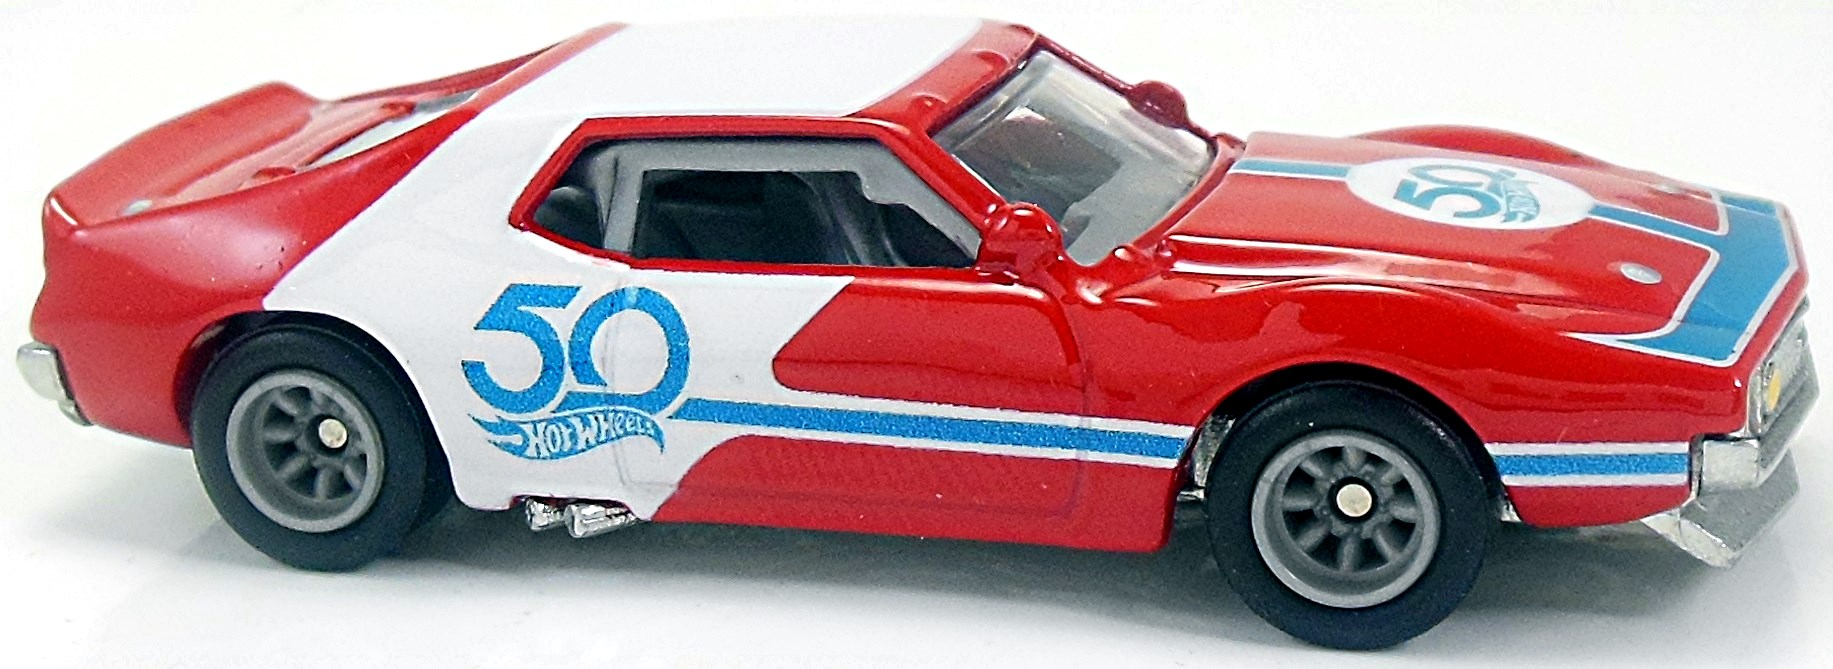 71) AMC Javelin AMX (r) | Hot Wheels Newsletter